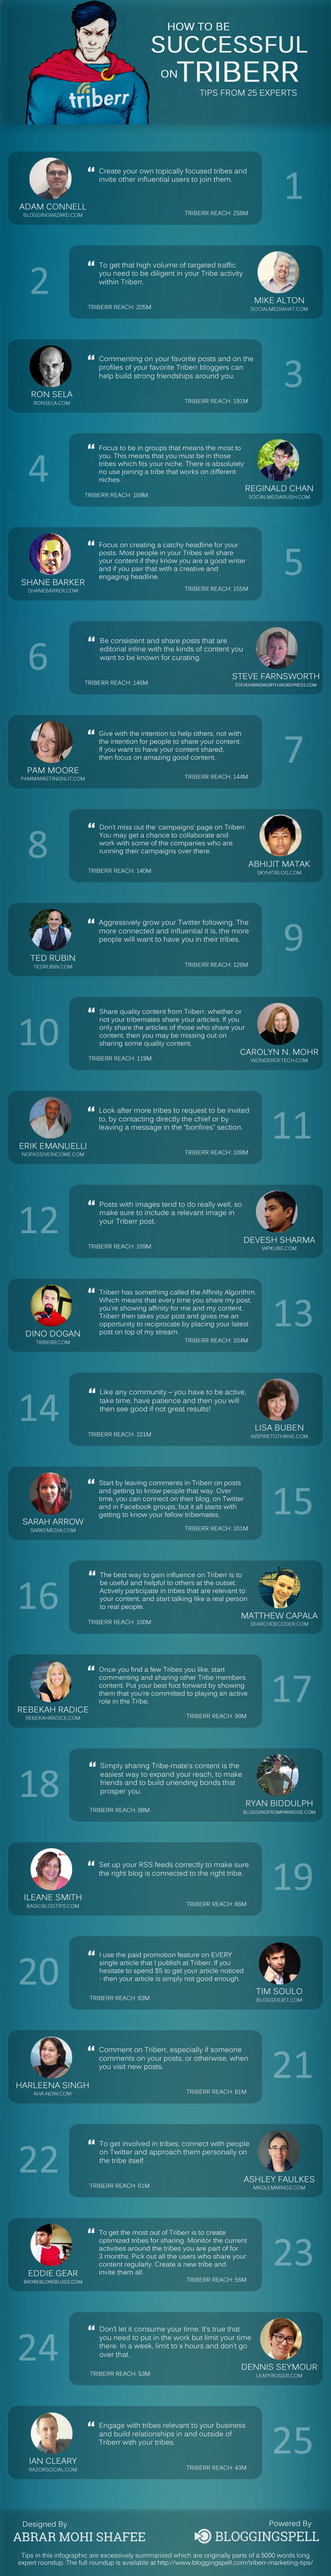 25 experts share how to get more traction from triberr http basicblogtips